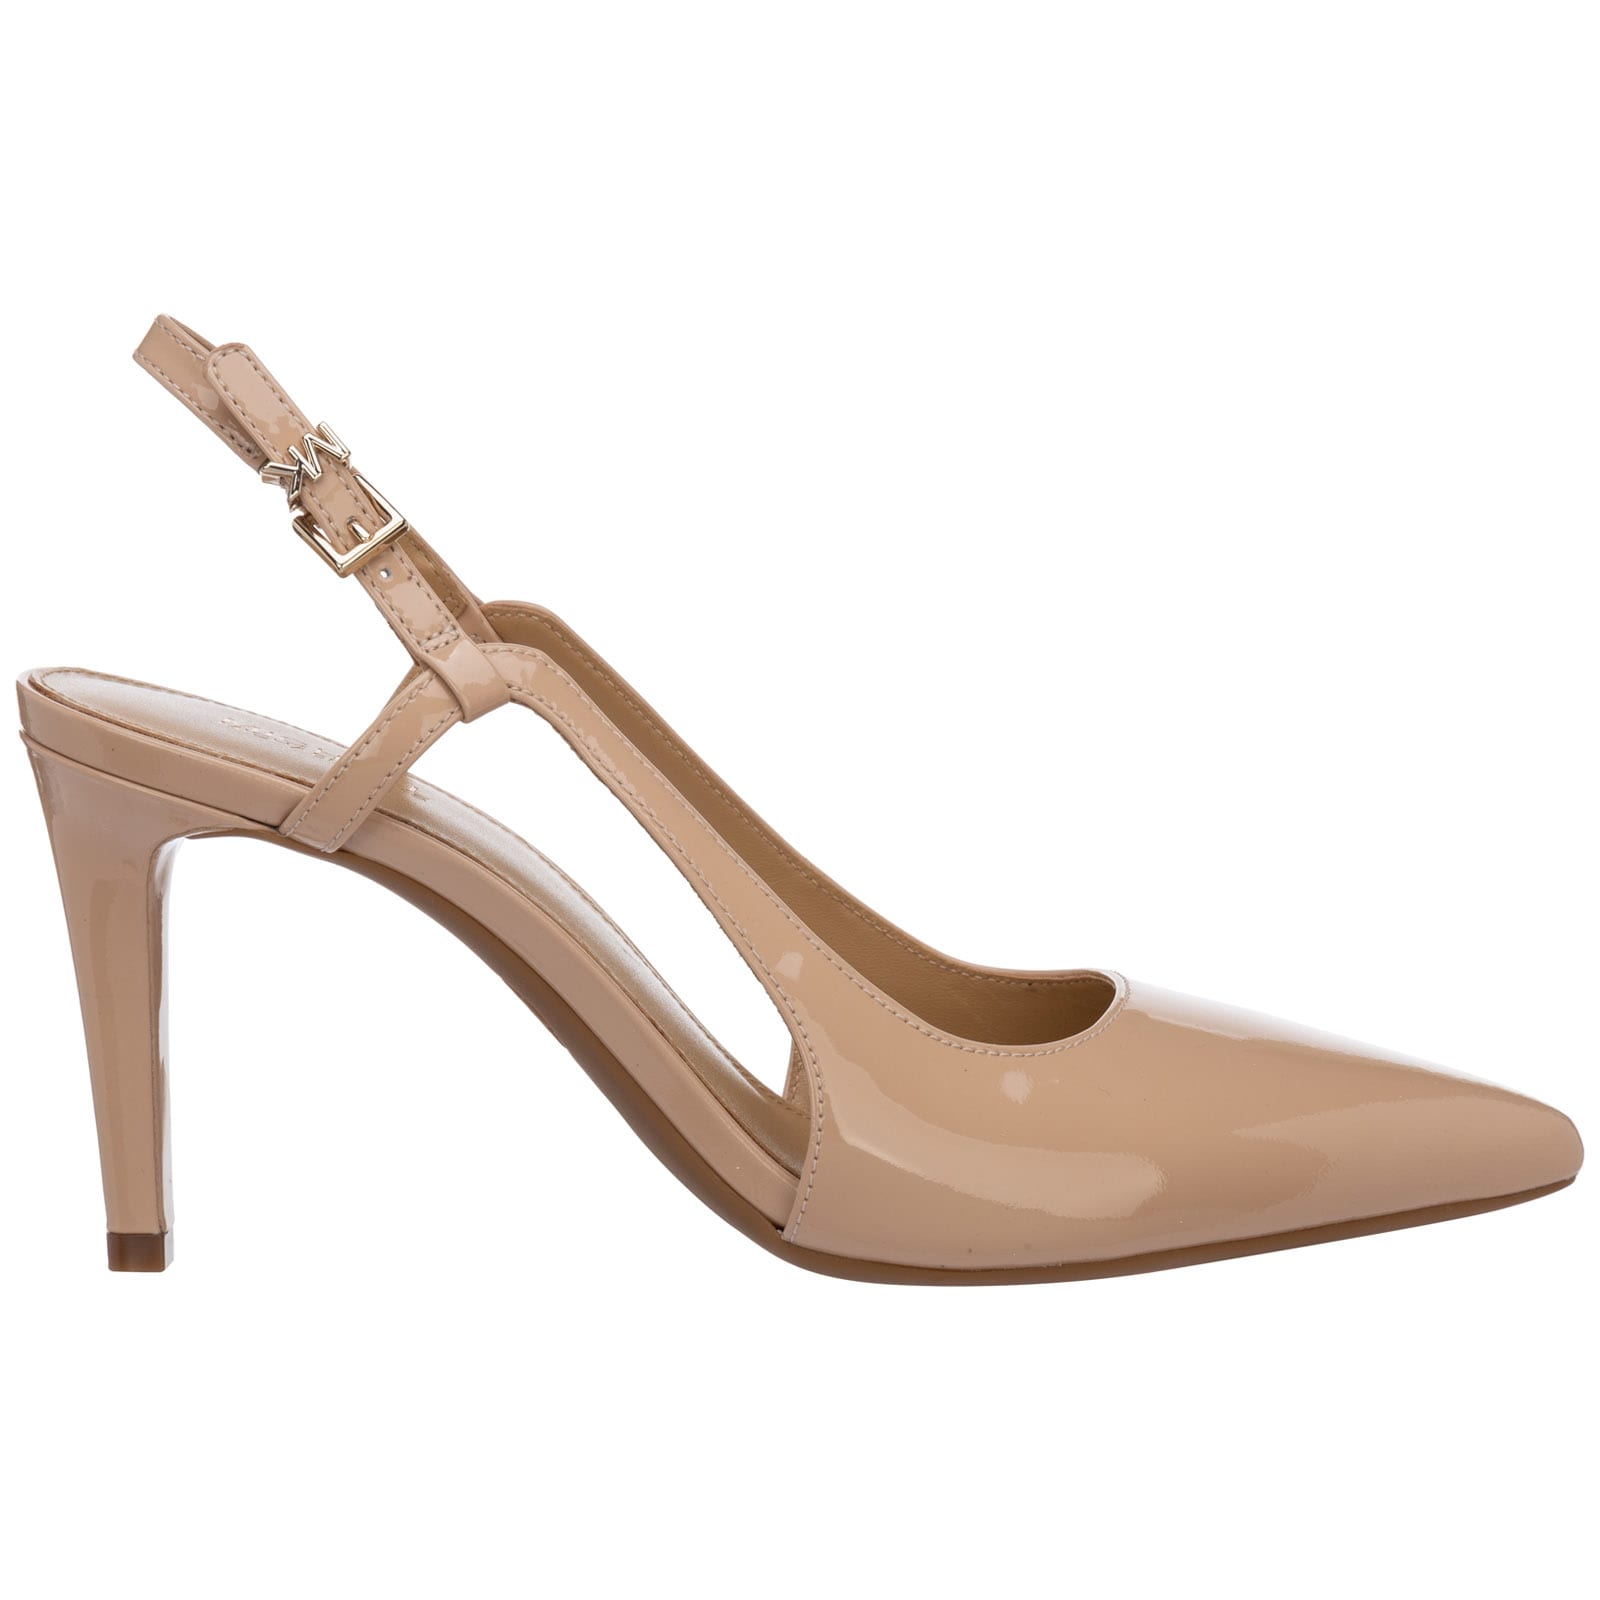 Buy Michael Kors Vanessa Sandals online, shop Michael Kors shoes with free shipping